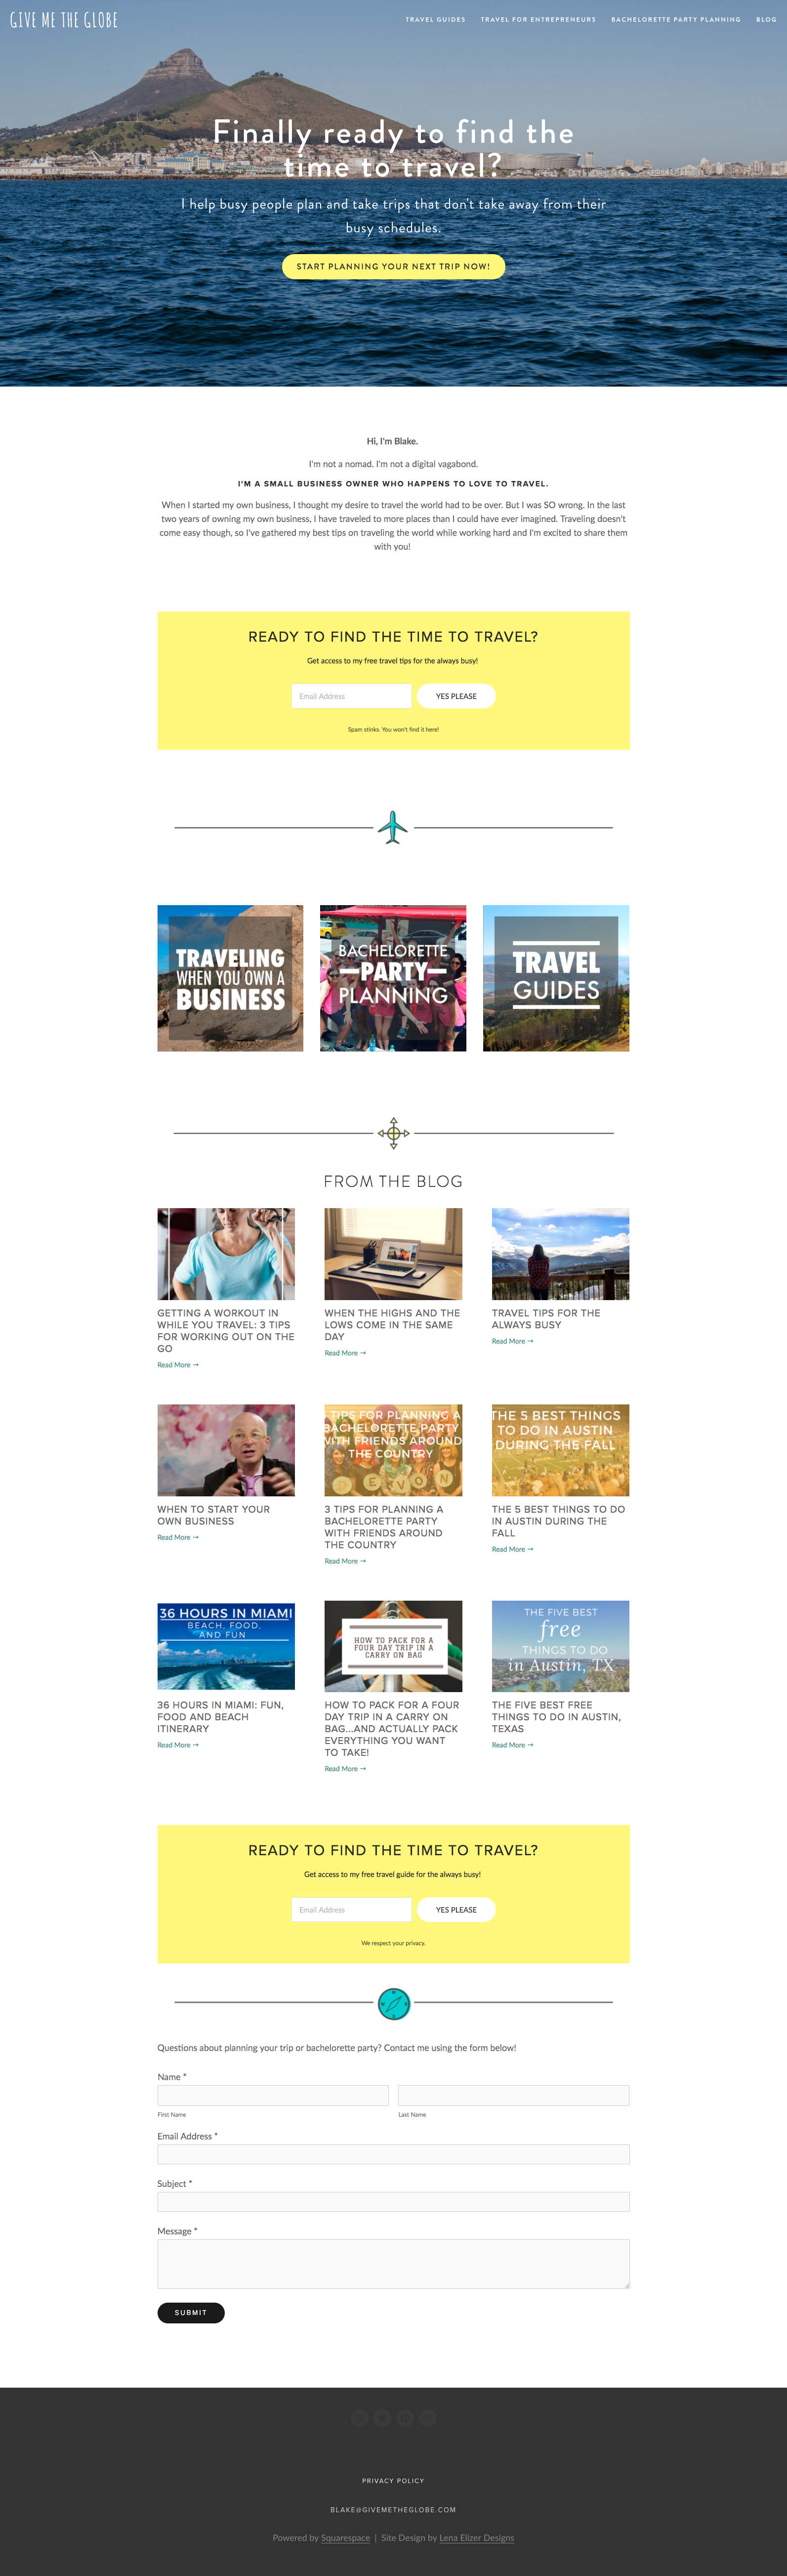 Travel Blog Small Business Website Selling Products Built On Squarespace Business Website Business Advice